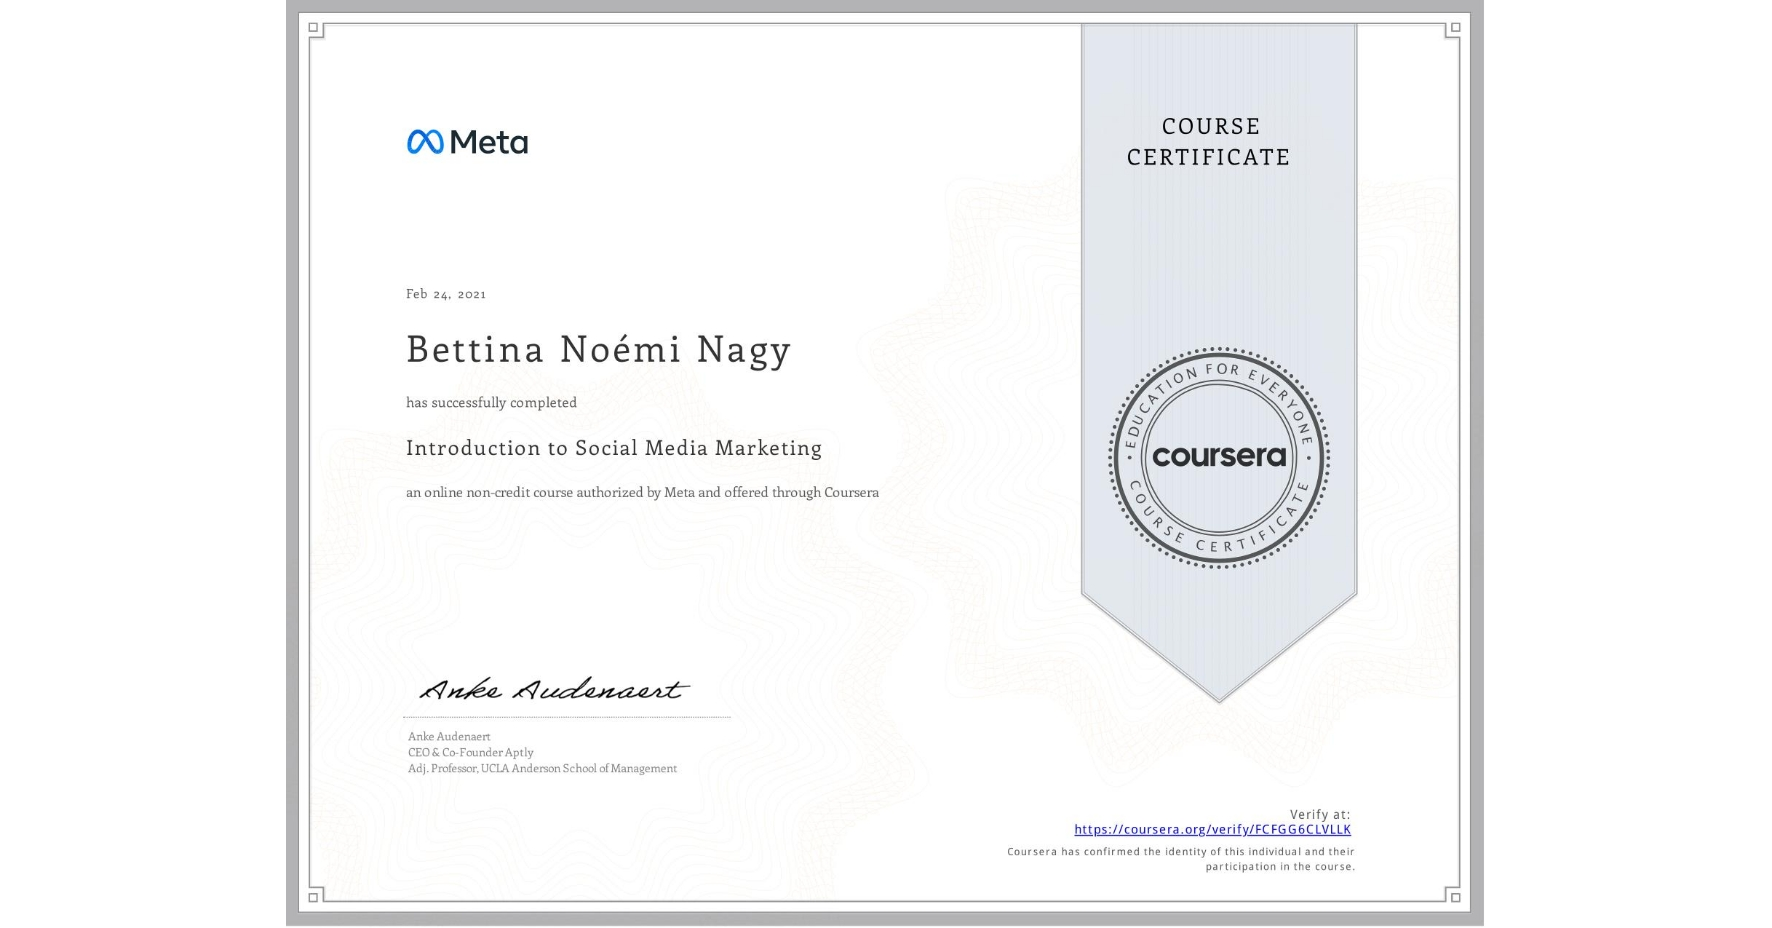 View certificate for Bettina Noémi Nagy, Introduction to Social Media Marketing, an online non-credit course authorized by Facebook and offered through Coursera